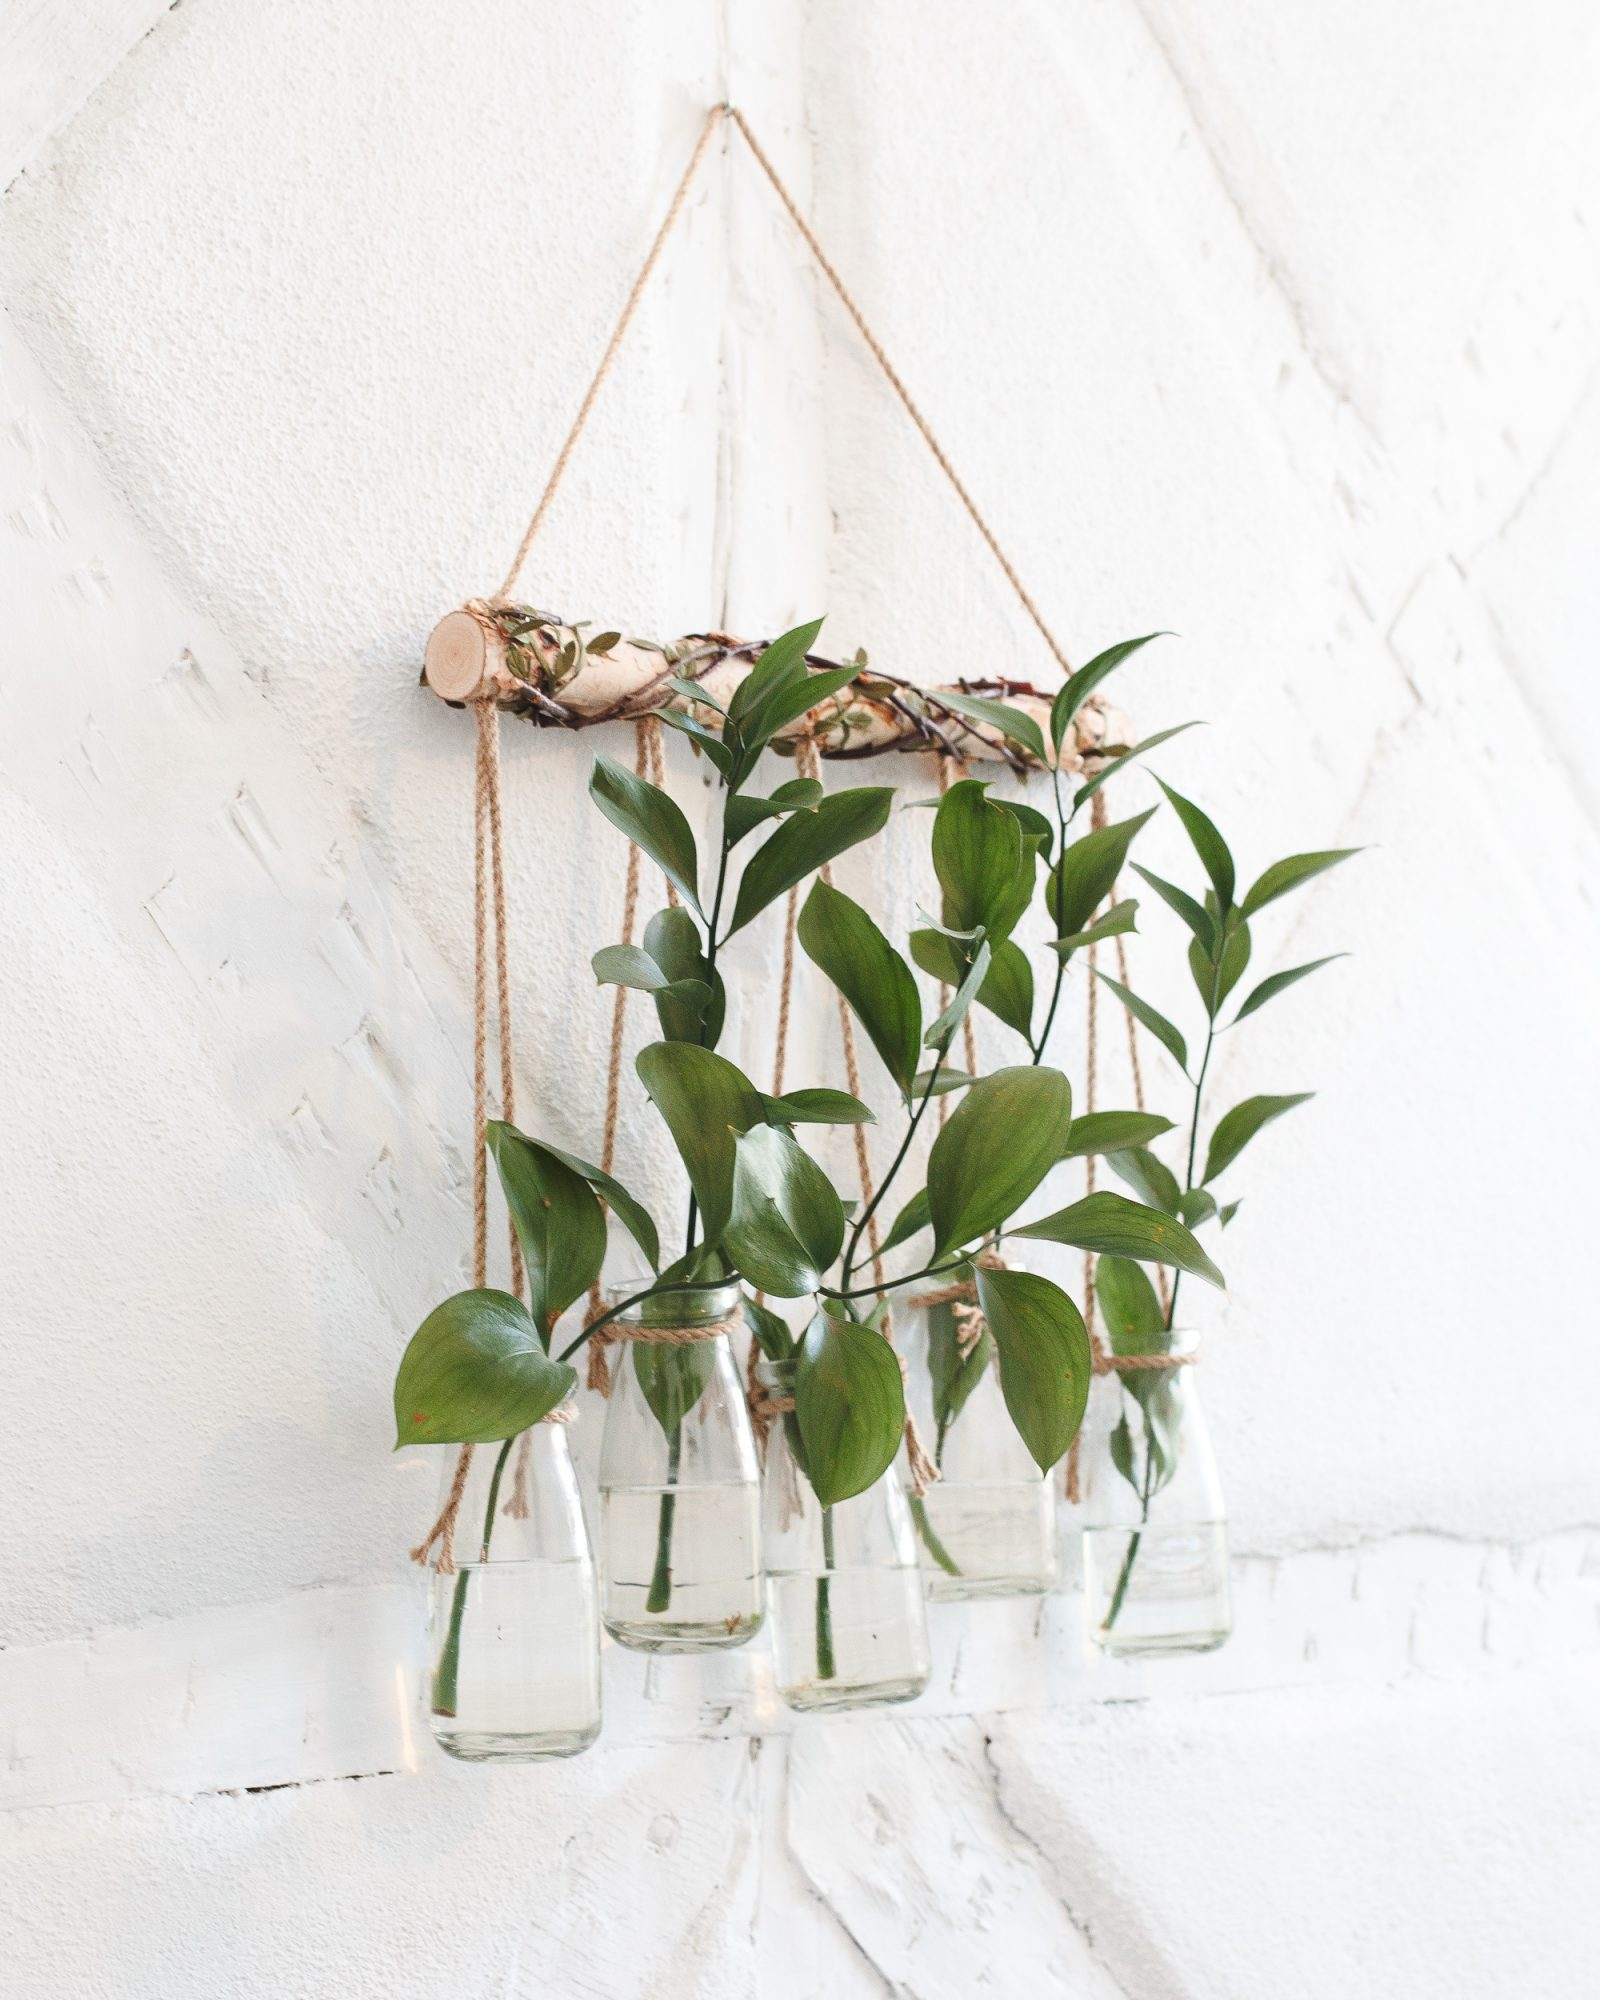 wall planter with hanging plants